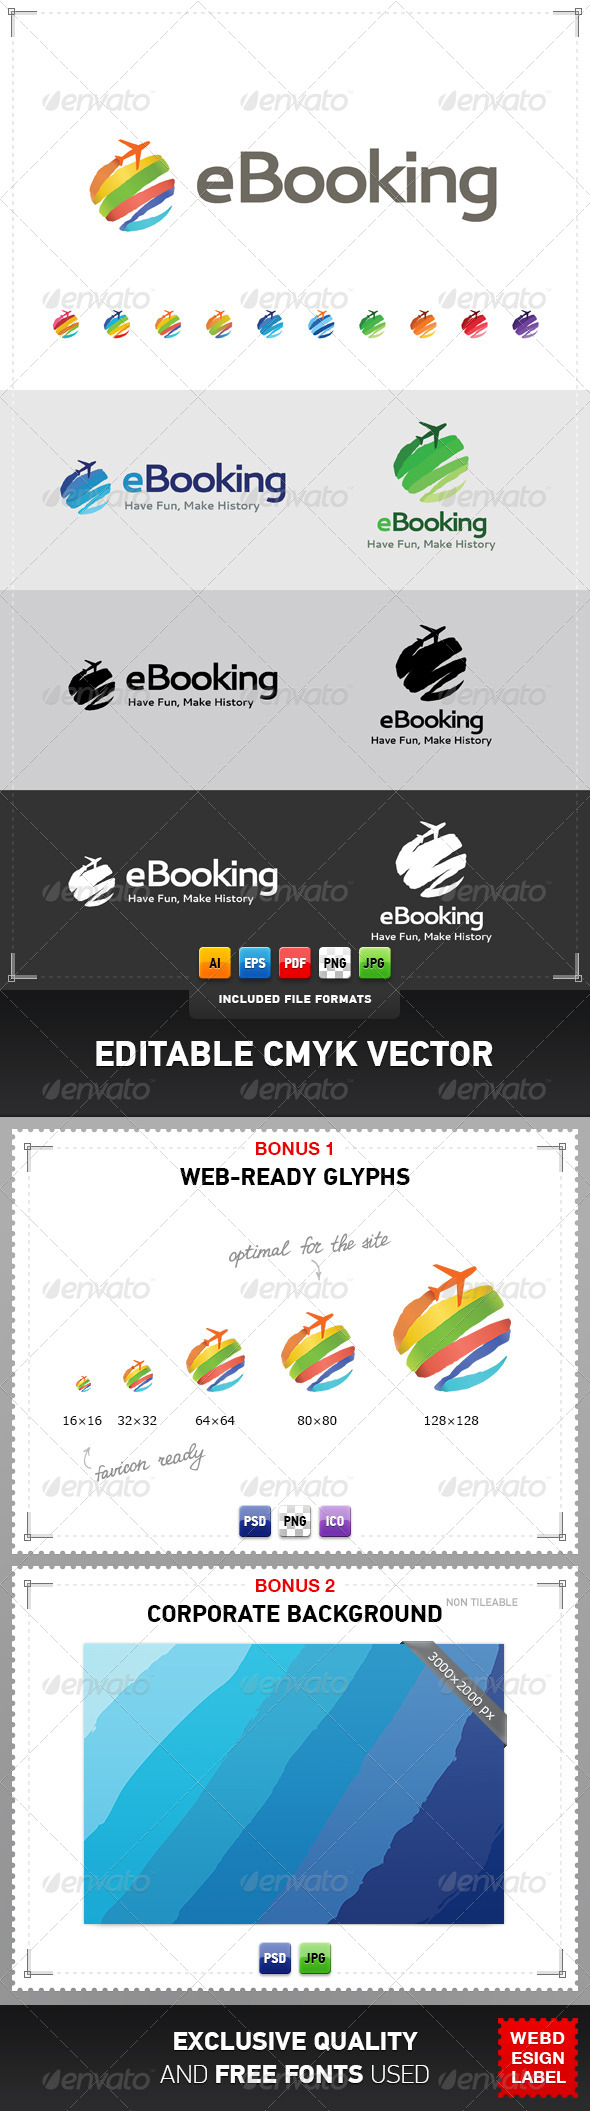 GraphicRiver eBooking Logo 4365733